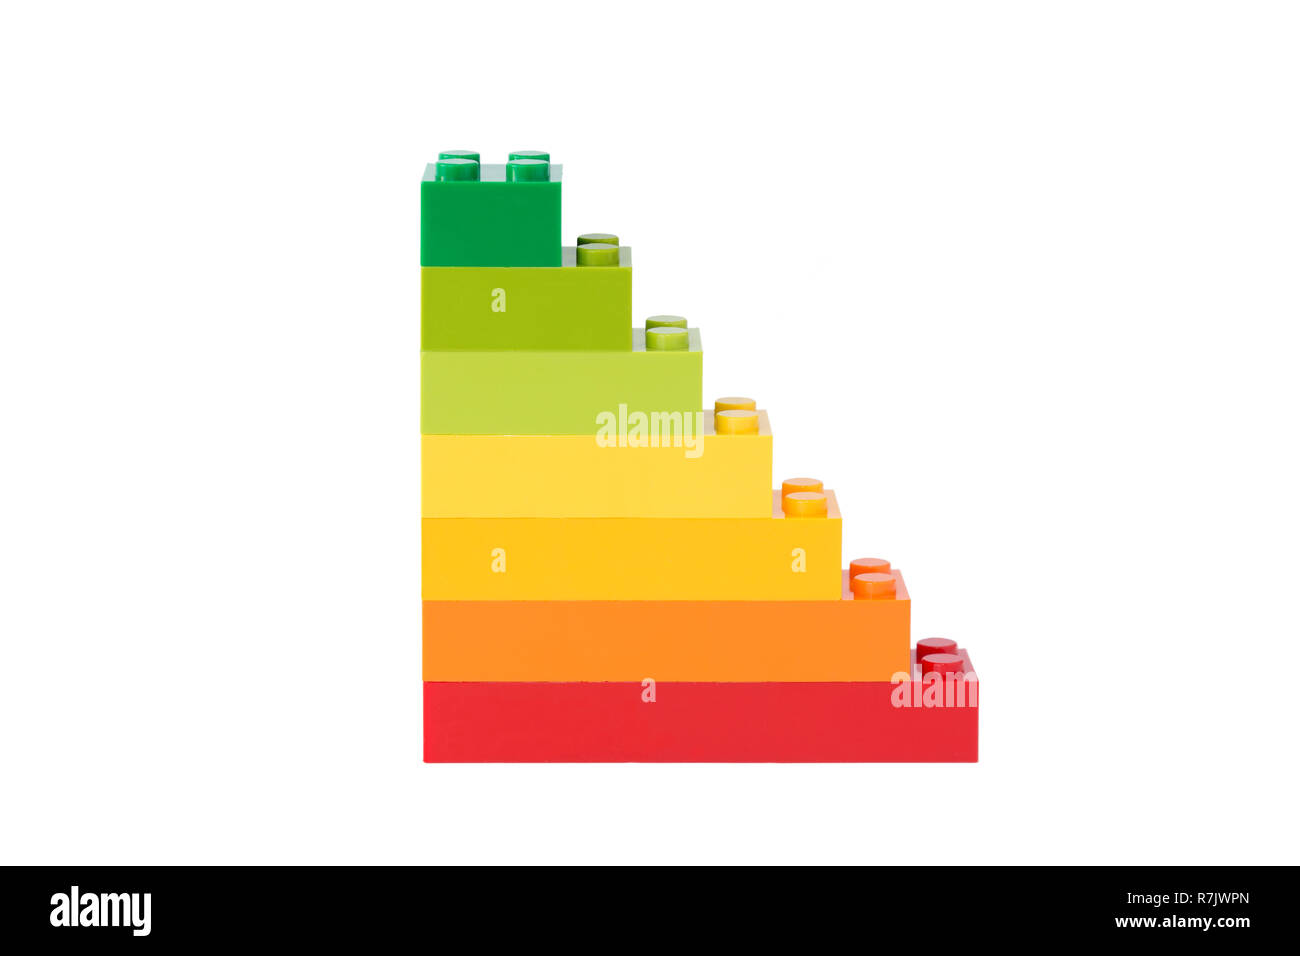 Empty European Union energy efficiency label made of toy building bricks, viewed from the front, isolated on white background. - Stock Image